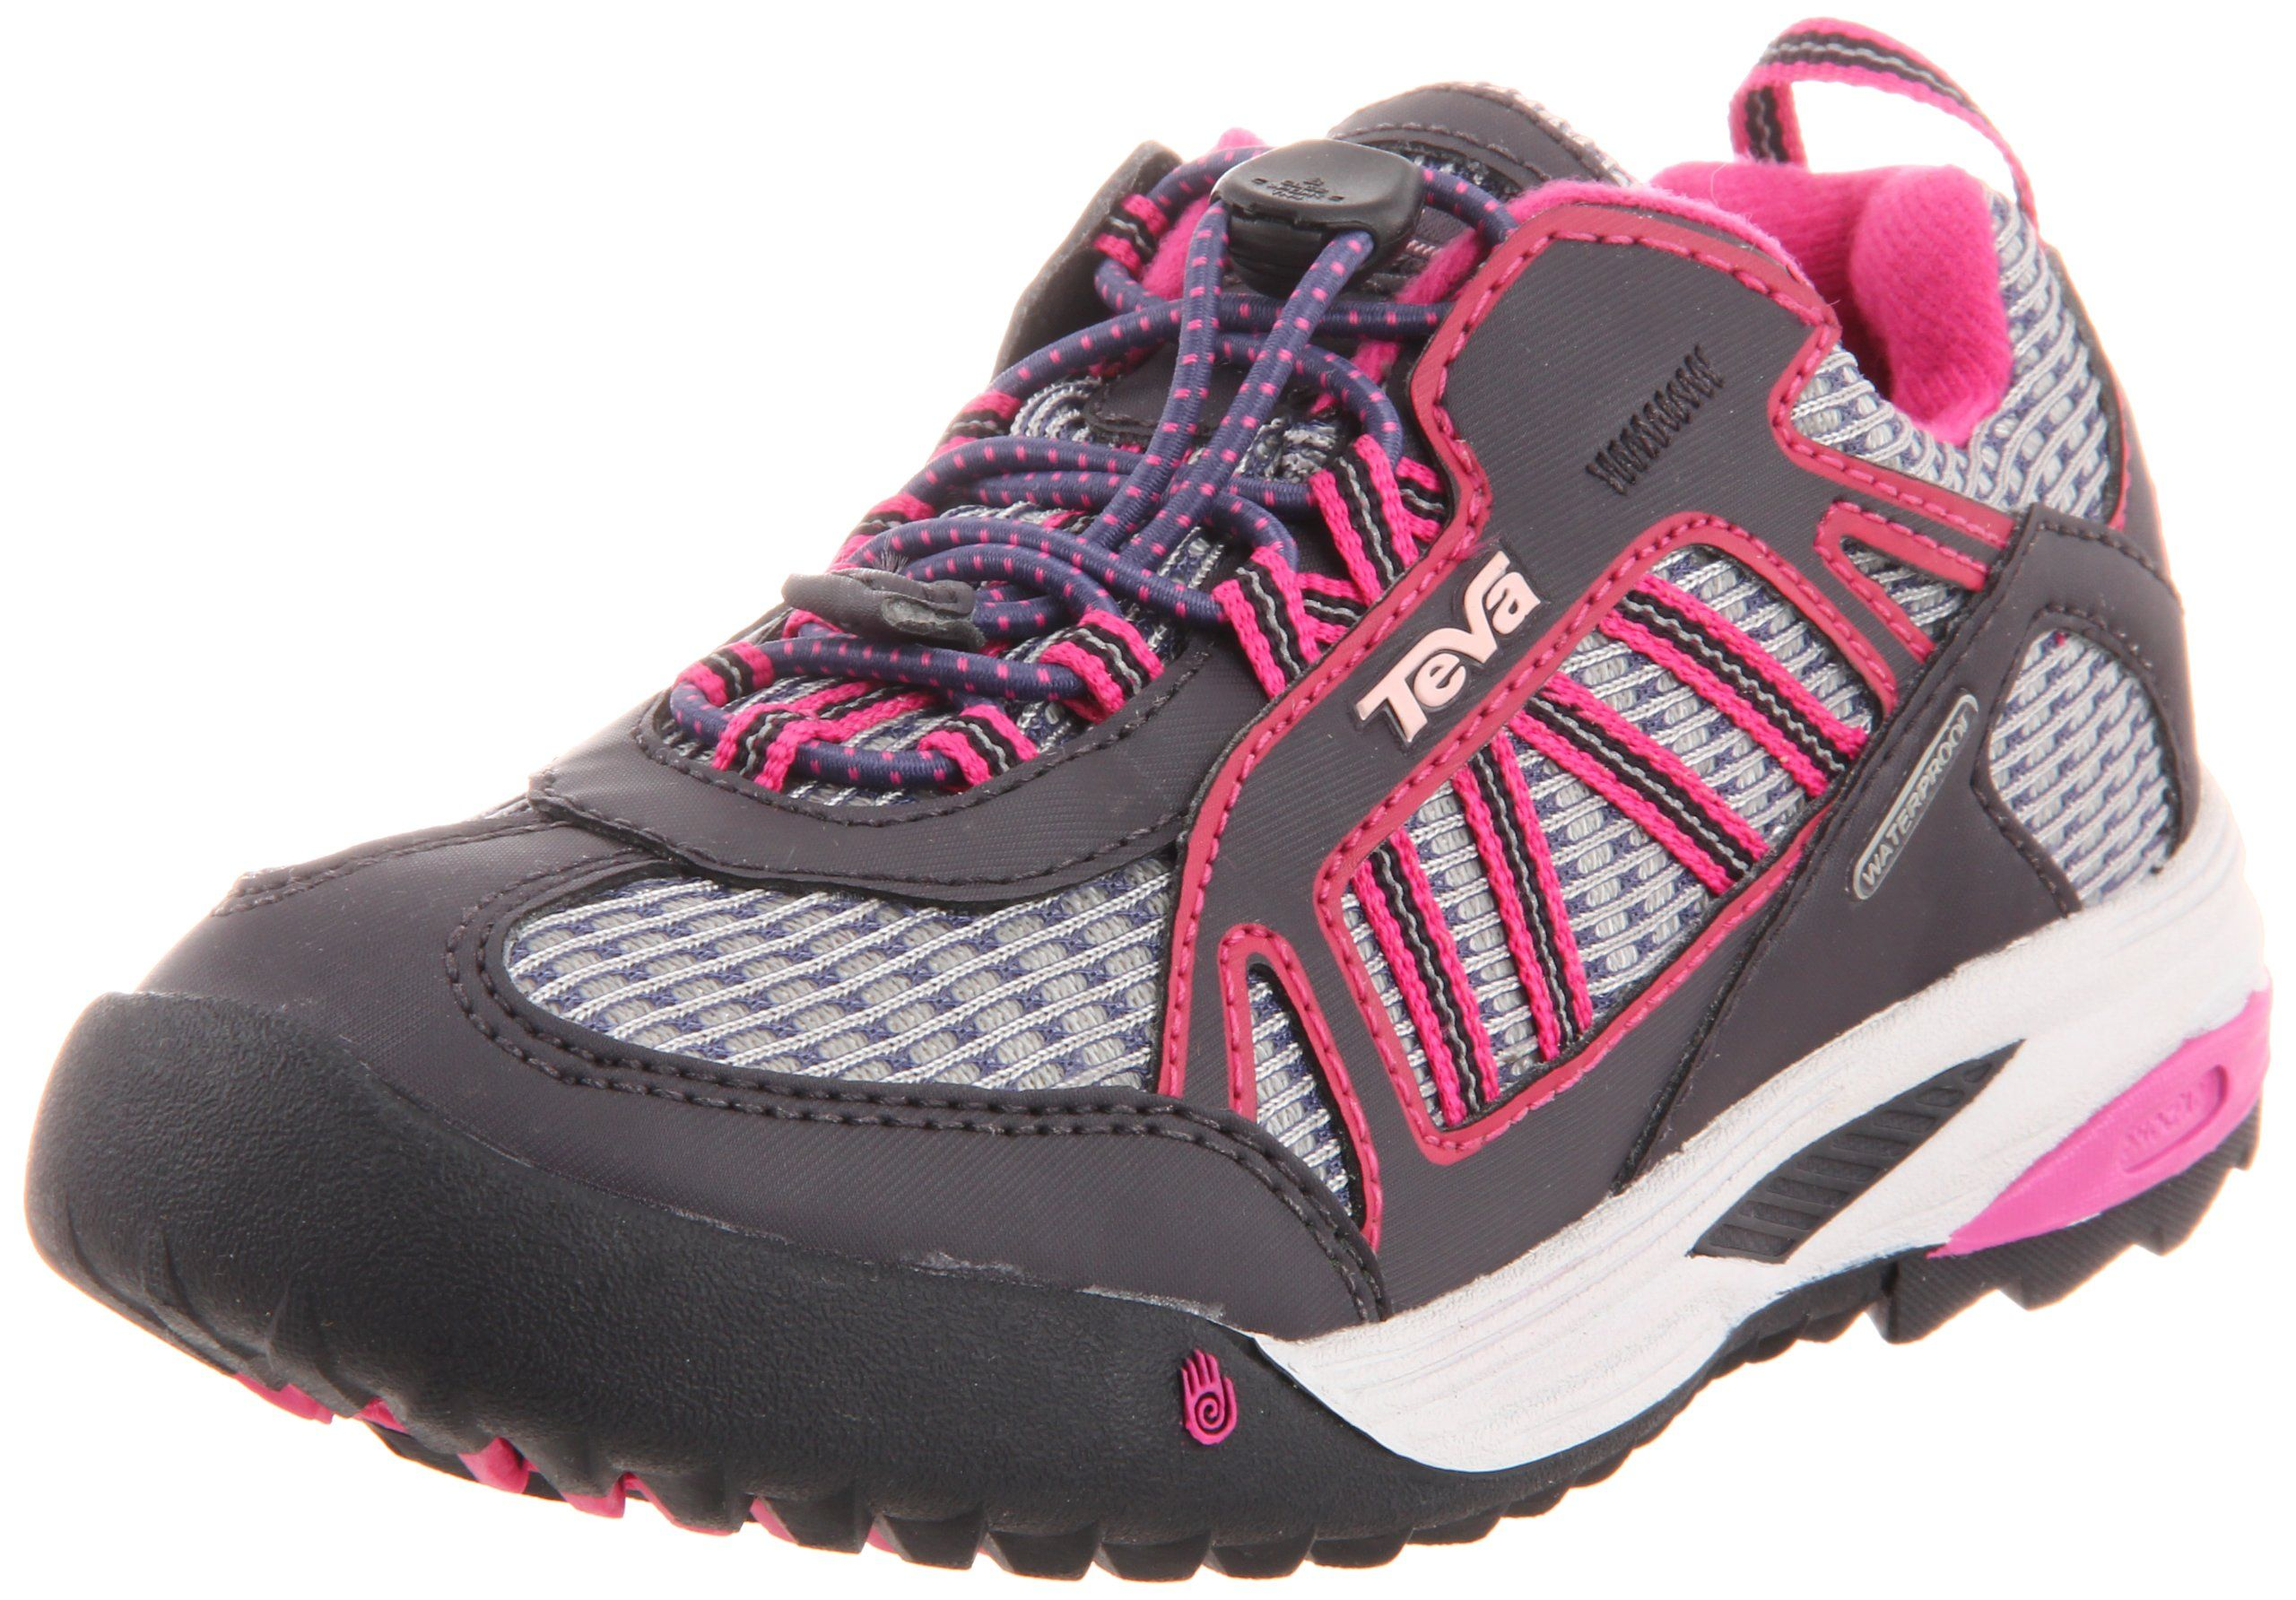 Teva Charge Hiking Shoe (Toddler/Little Kid/Big Kid),Pink,3 M US Little Kid. Teva waterproof membrane. Spider365 rubber outsole. Single-pull lacing system.